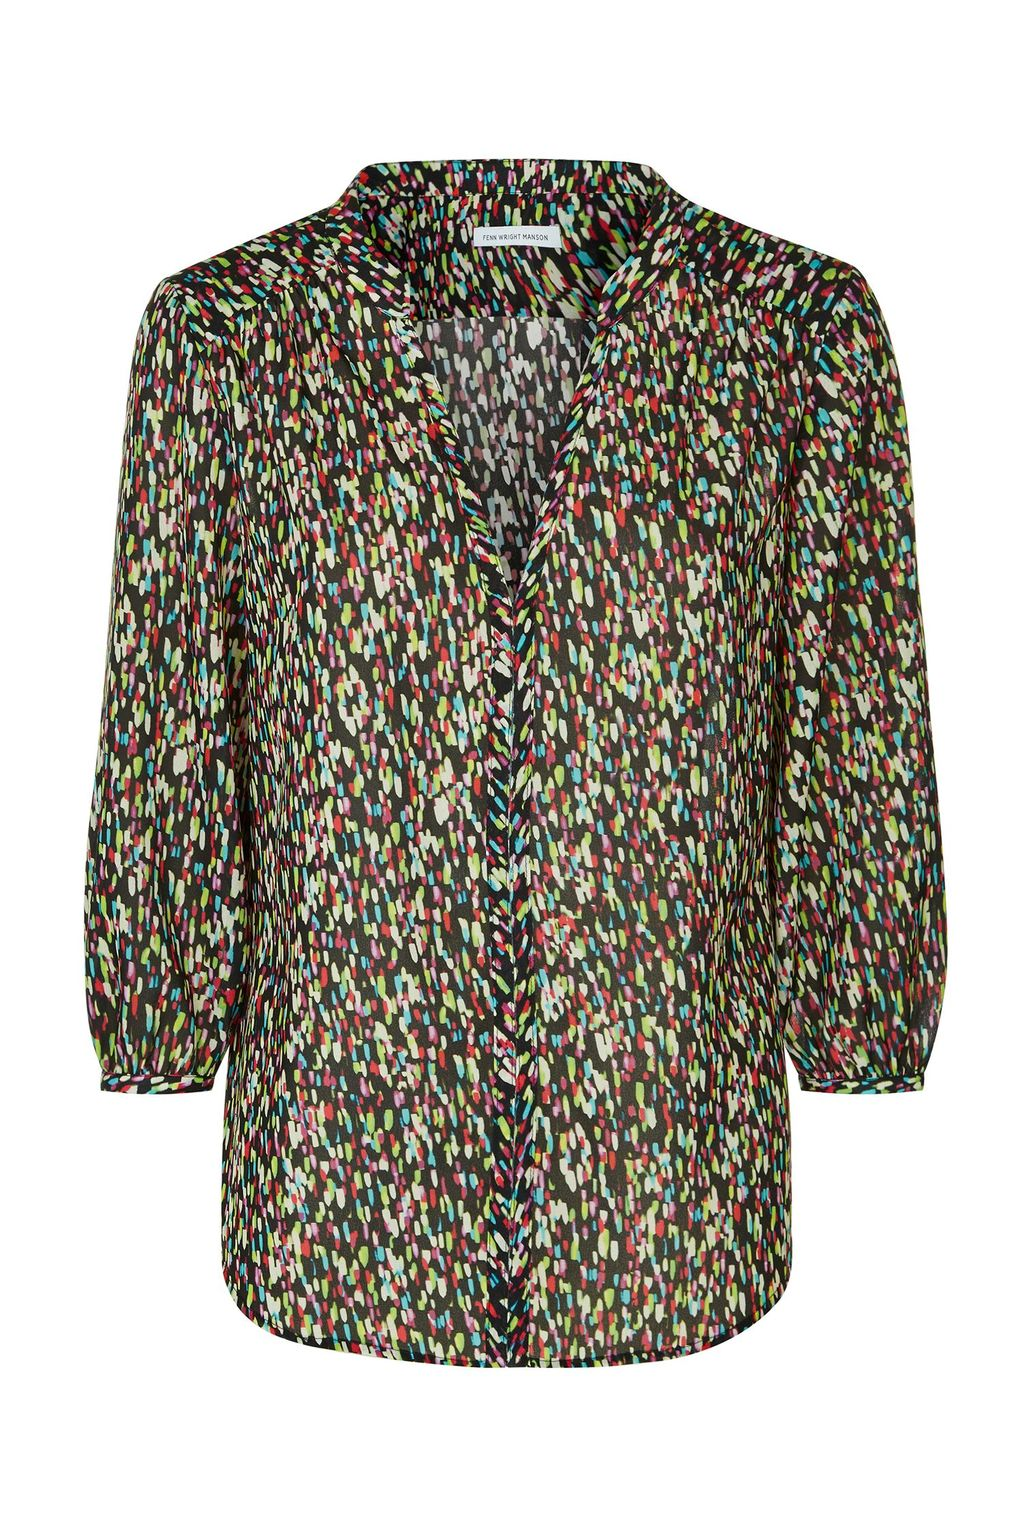 Martinique Top, Multi Coloured - neckline: low v-neck; length: below the bottom; style: blouse; secondary colour: pistachio; predominant colour: black; occasions: casual, creative work; fibres: polyester/polyamide - 100%; fit: body skimming; sleeve length: 3/4 length; sleeve style: standard; texture group: sheer fabrics/chiffon/organza etc.; pattern type: fabric; pattern size: light/subtle; pattern: patterned/print; multicoloured: multicoloured; season: a/w 2015; wardrobe: highlight